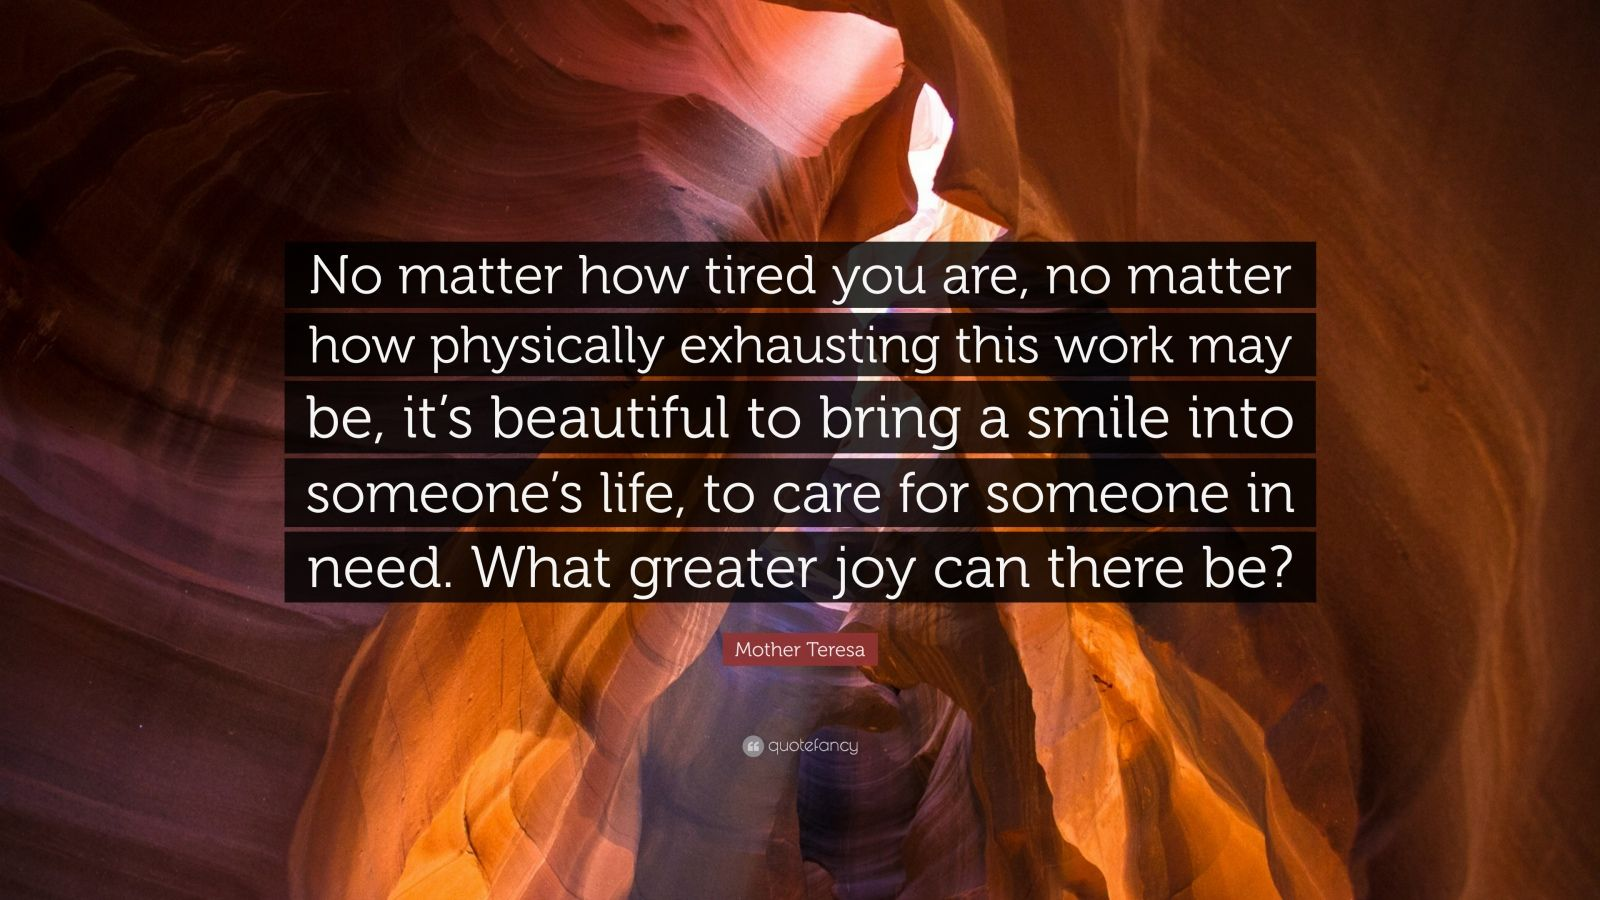 """Mother Teresa Quote: """"No matter how tired you are, no matter how physically exhausting this work may be, it's beautiful to bring a smile into someone's life, to care for someone in need. What greater joy can there be?"""""""